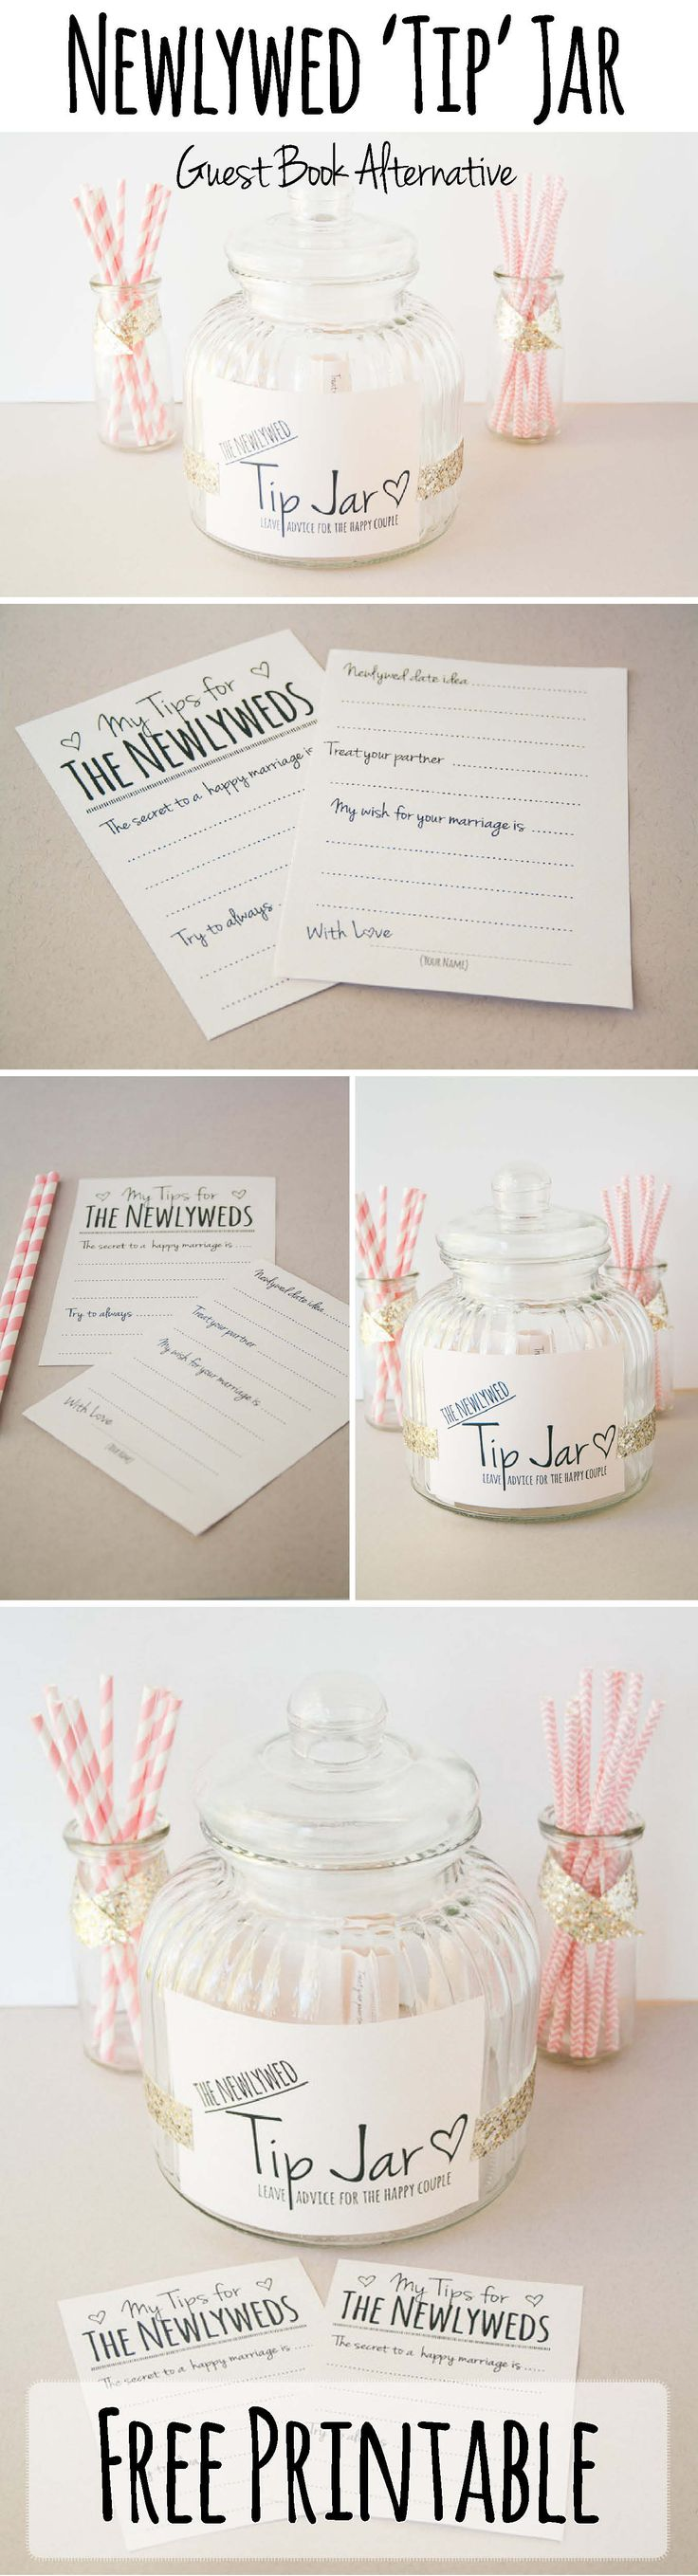 Newly Wed Tip Jar http://www.confettidaydreams.com/newlywed-tip-jar/ Here's how to make this cute Tip Jar for your wedding as an adorable guest book alternative!